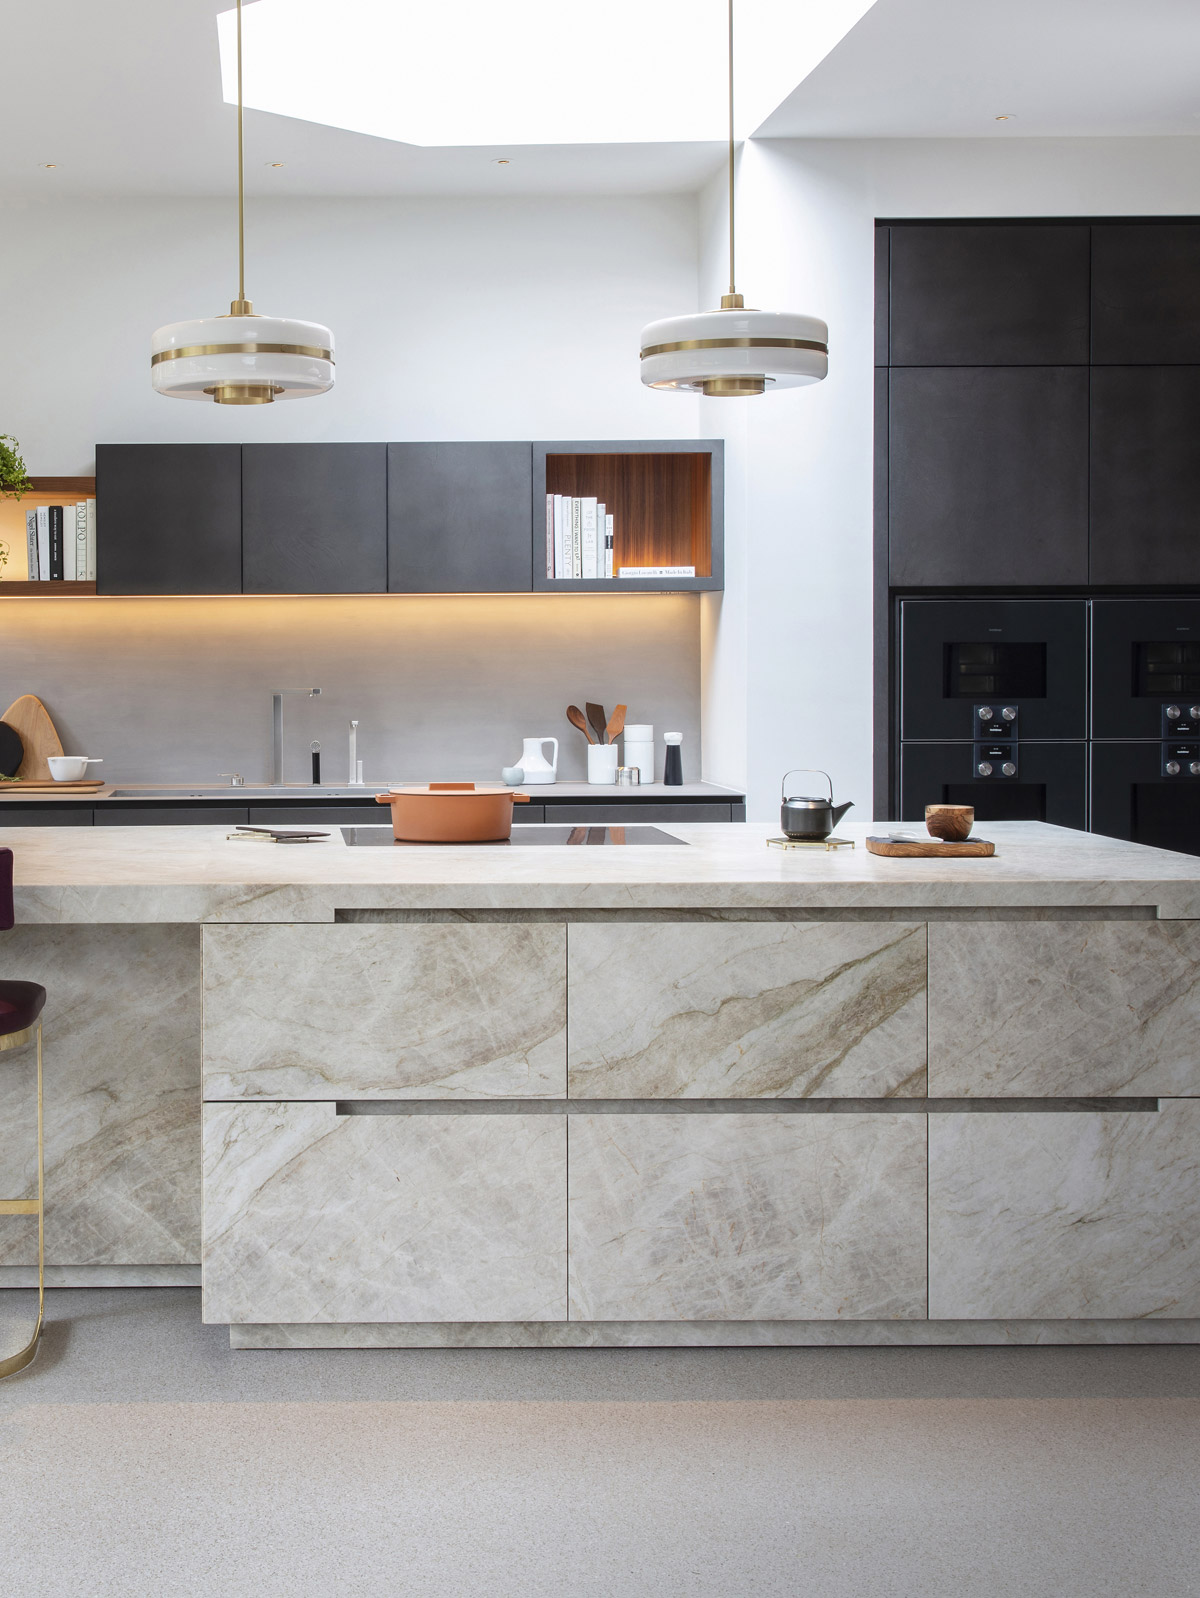 kitchen design, A Modern Kitchen Design with Style and Functionality